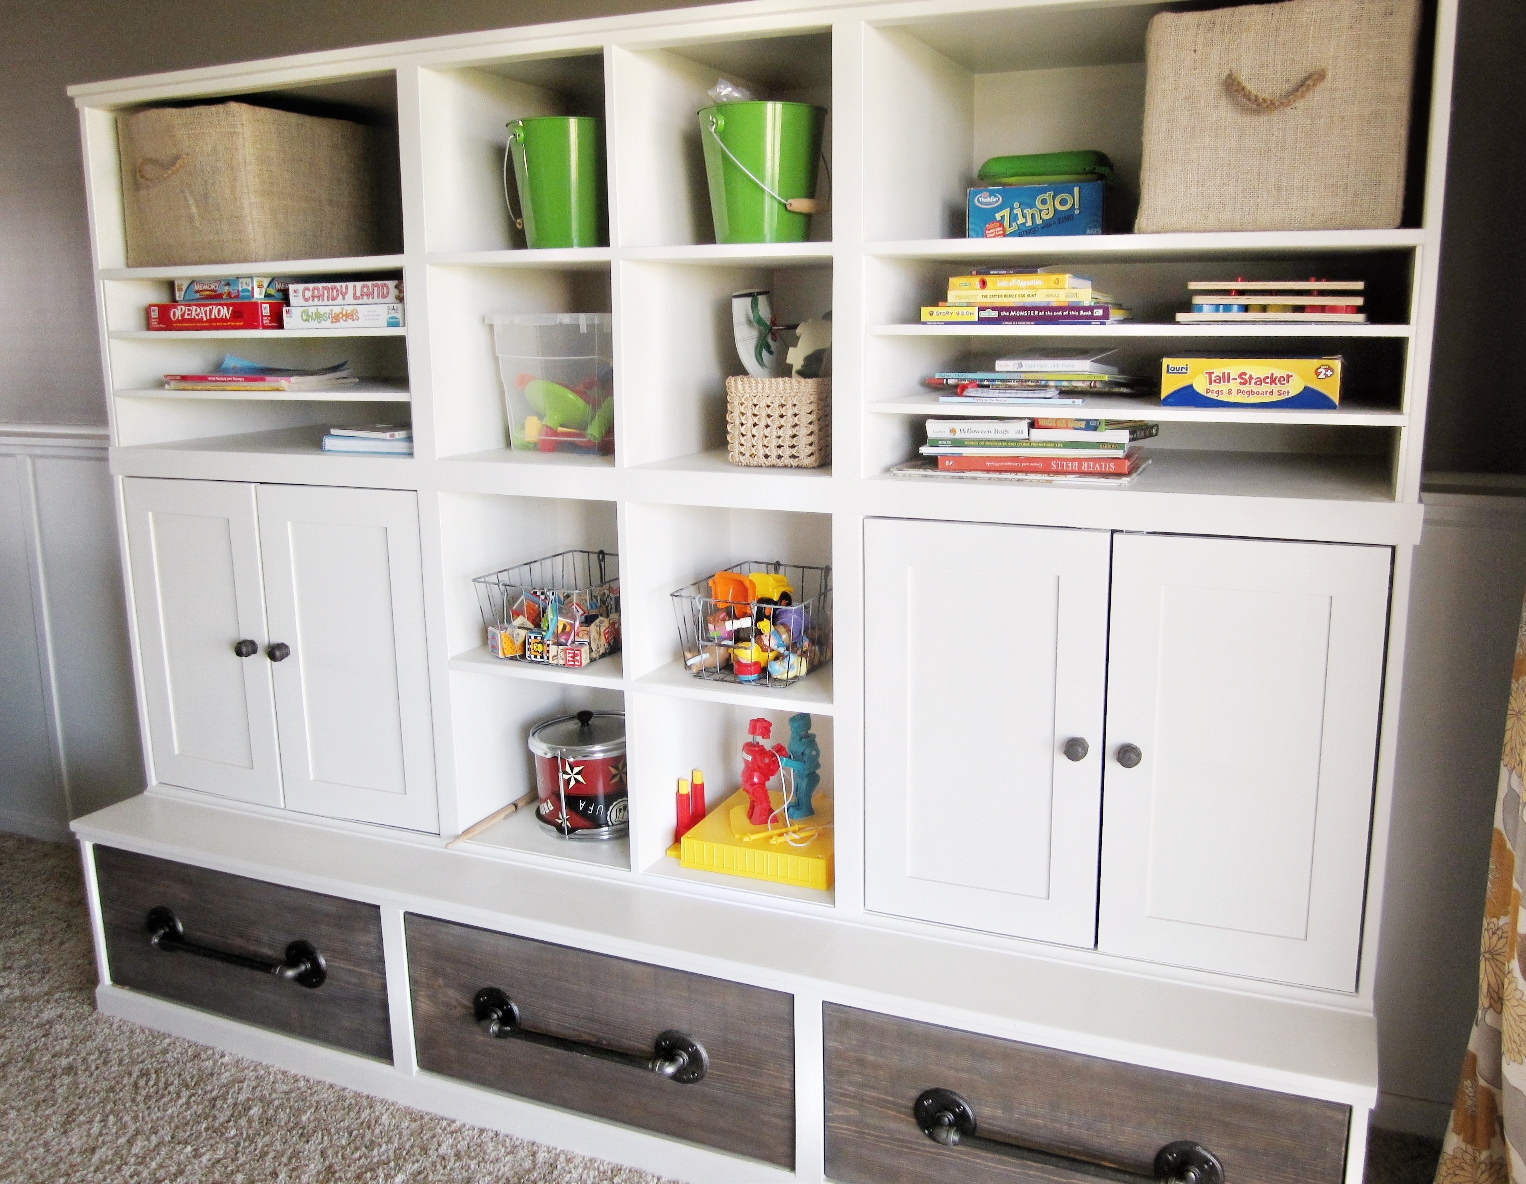 Big Blue Storage Cabinetsfurniture awesome furniture for living room including kid bedroom